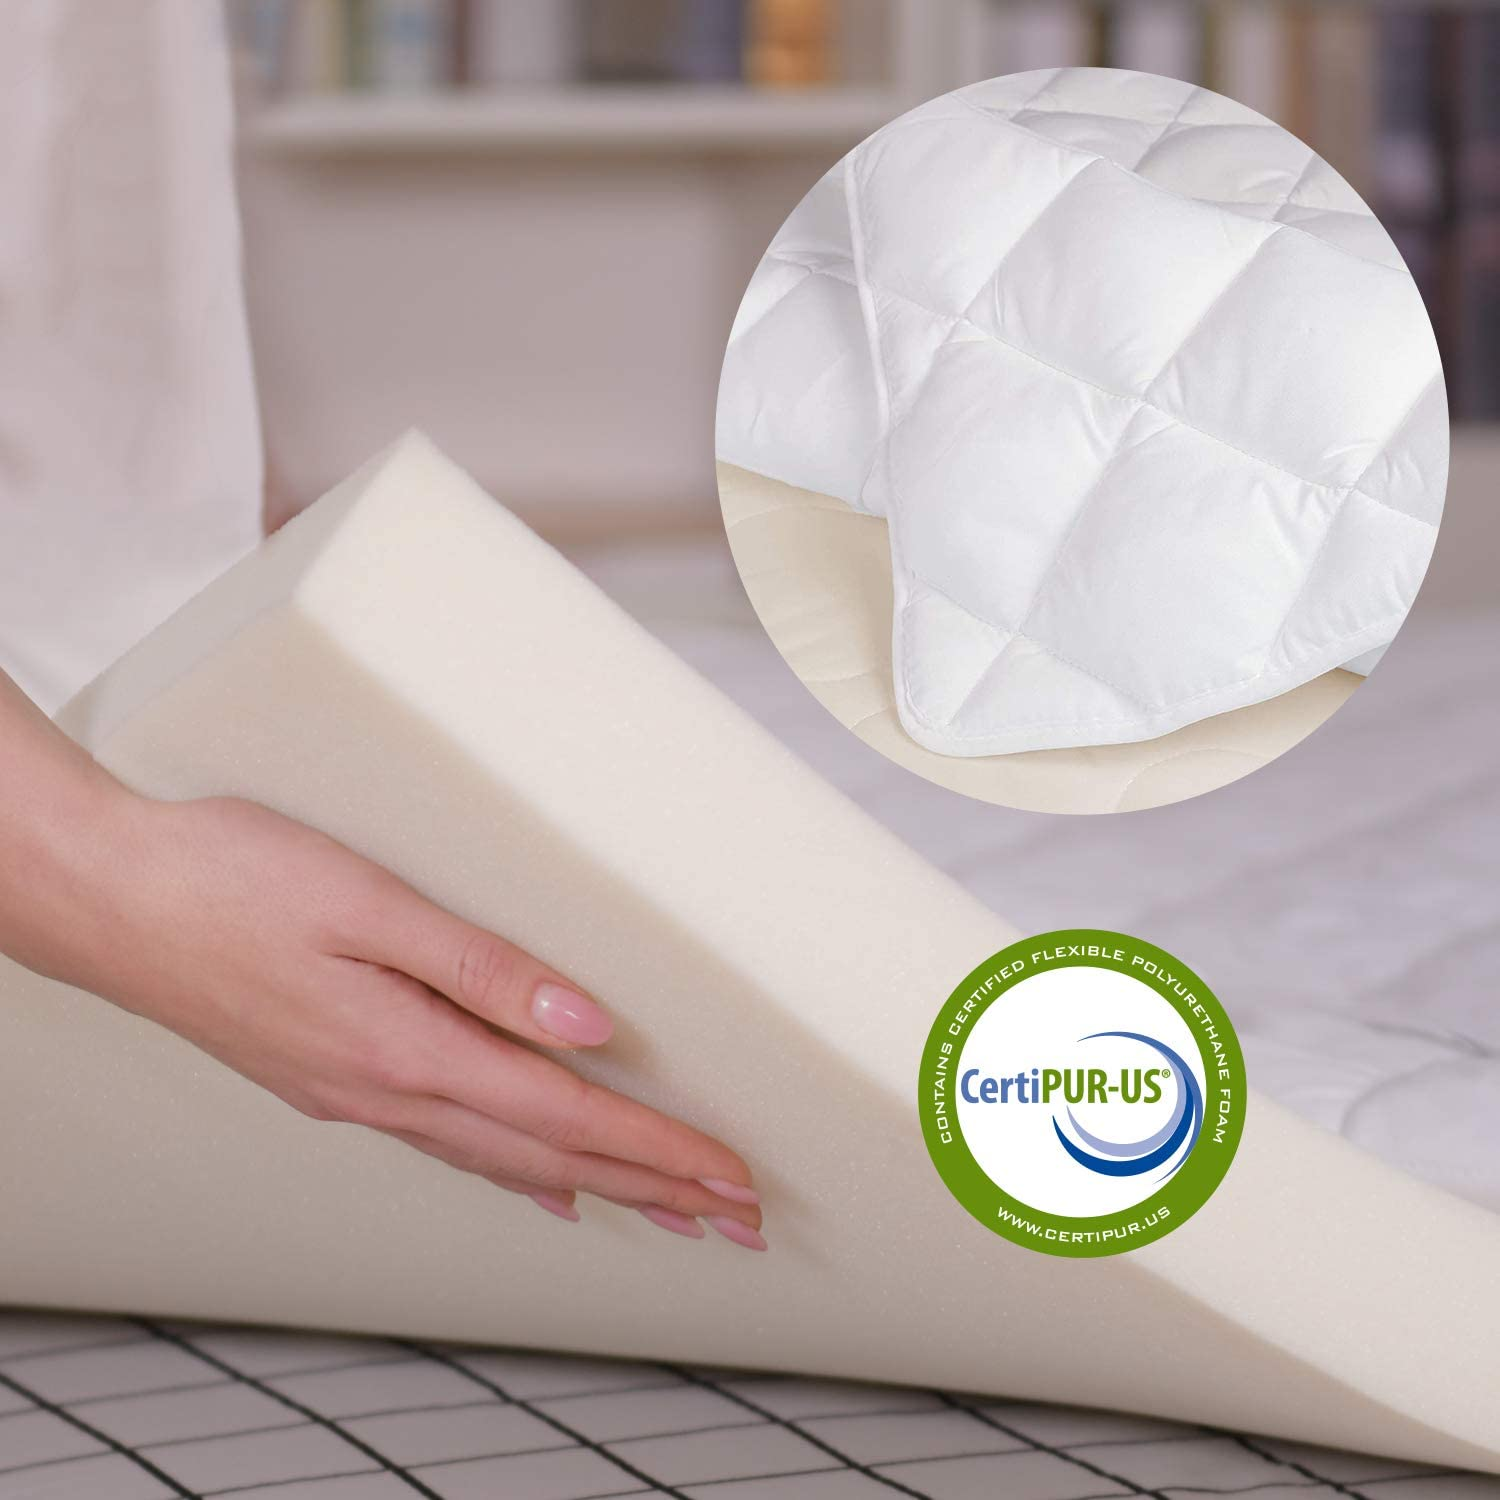 Smile Back Memory Foam Mattress Topper, 2-Inch Mattress Topper Queen with Extra Quilted Microfiber Mattress Pad, CertiPUR-US Certified-Queen Size